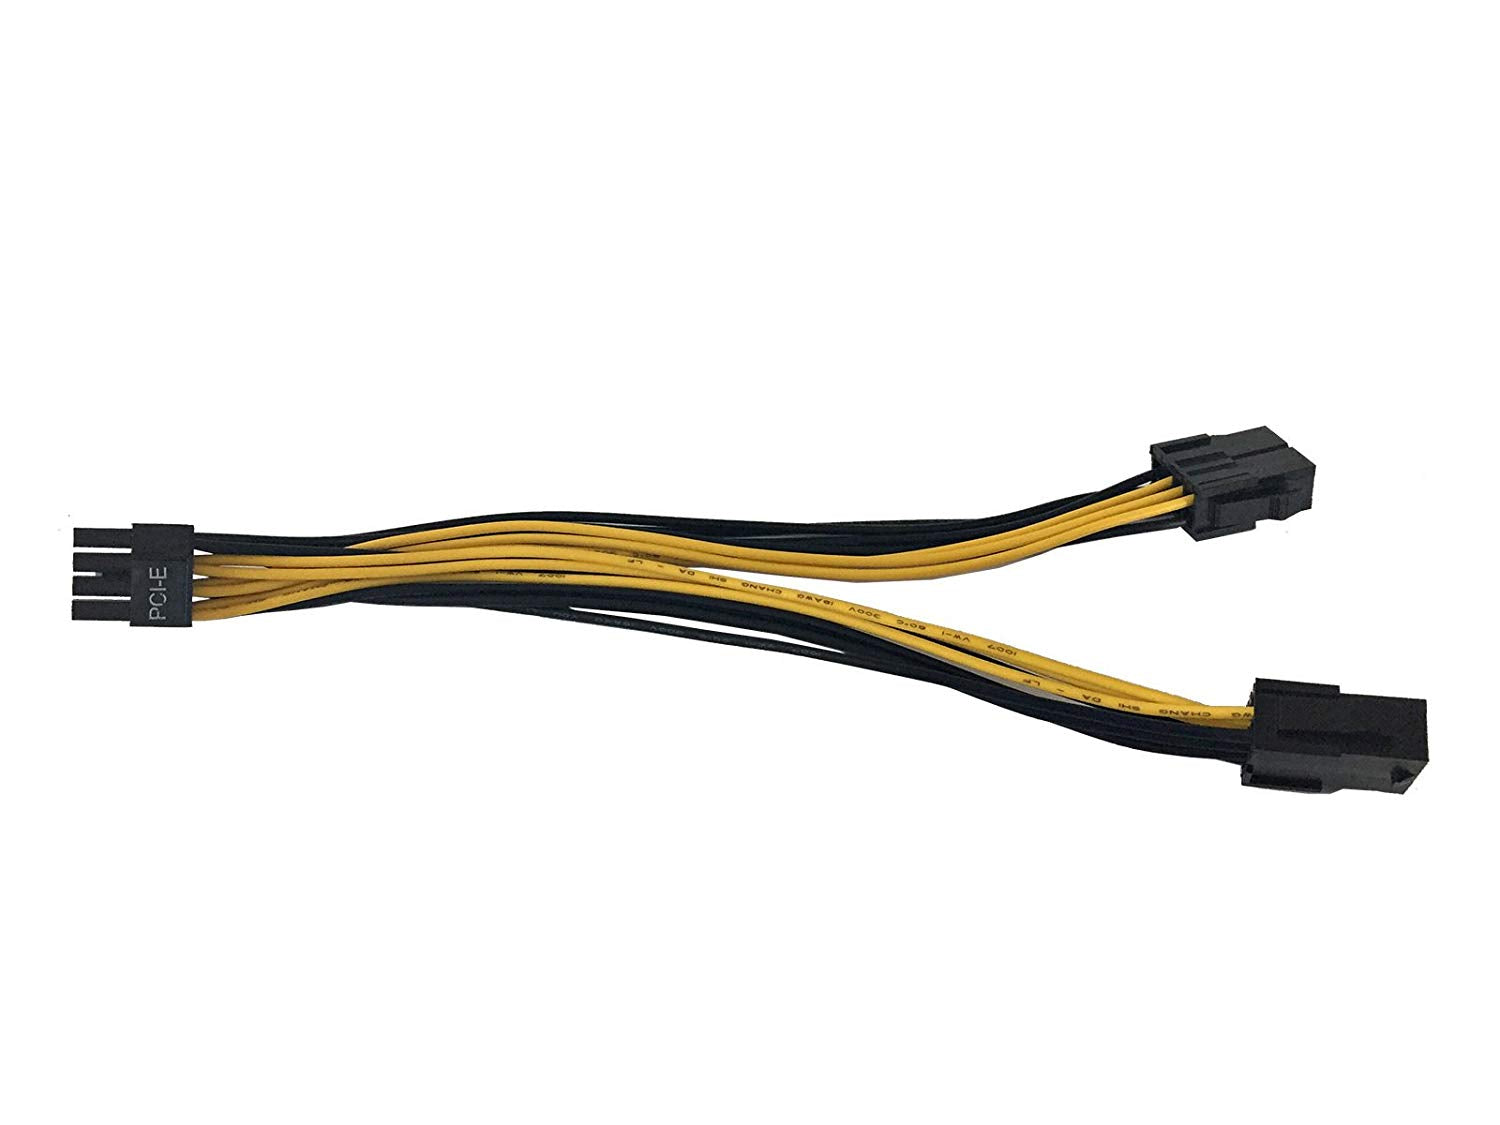 "9"" (9-Inch) 8(6+2-Pin) PCIe Male to Dual 8-Pin PCIe Female Splitter Power Cable Adapter 18AWG"